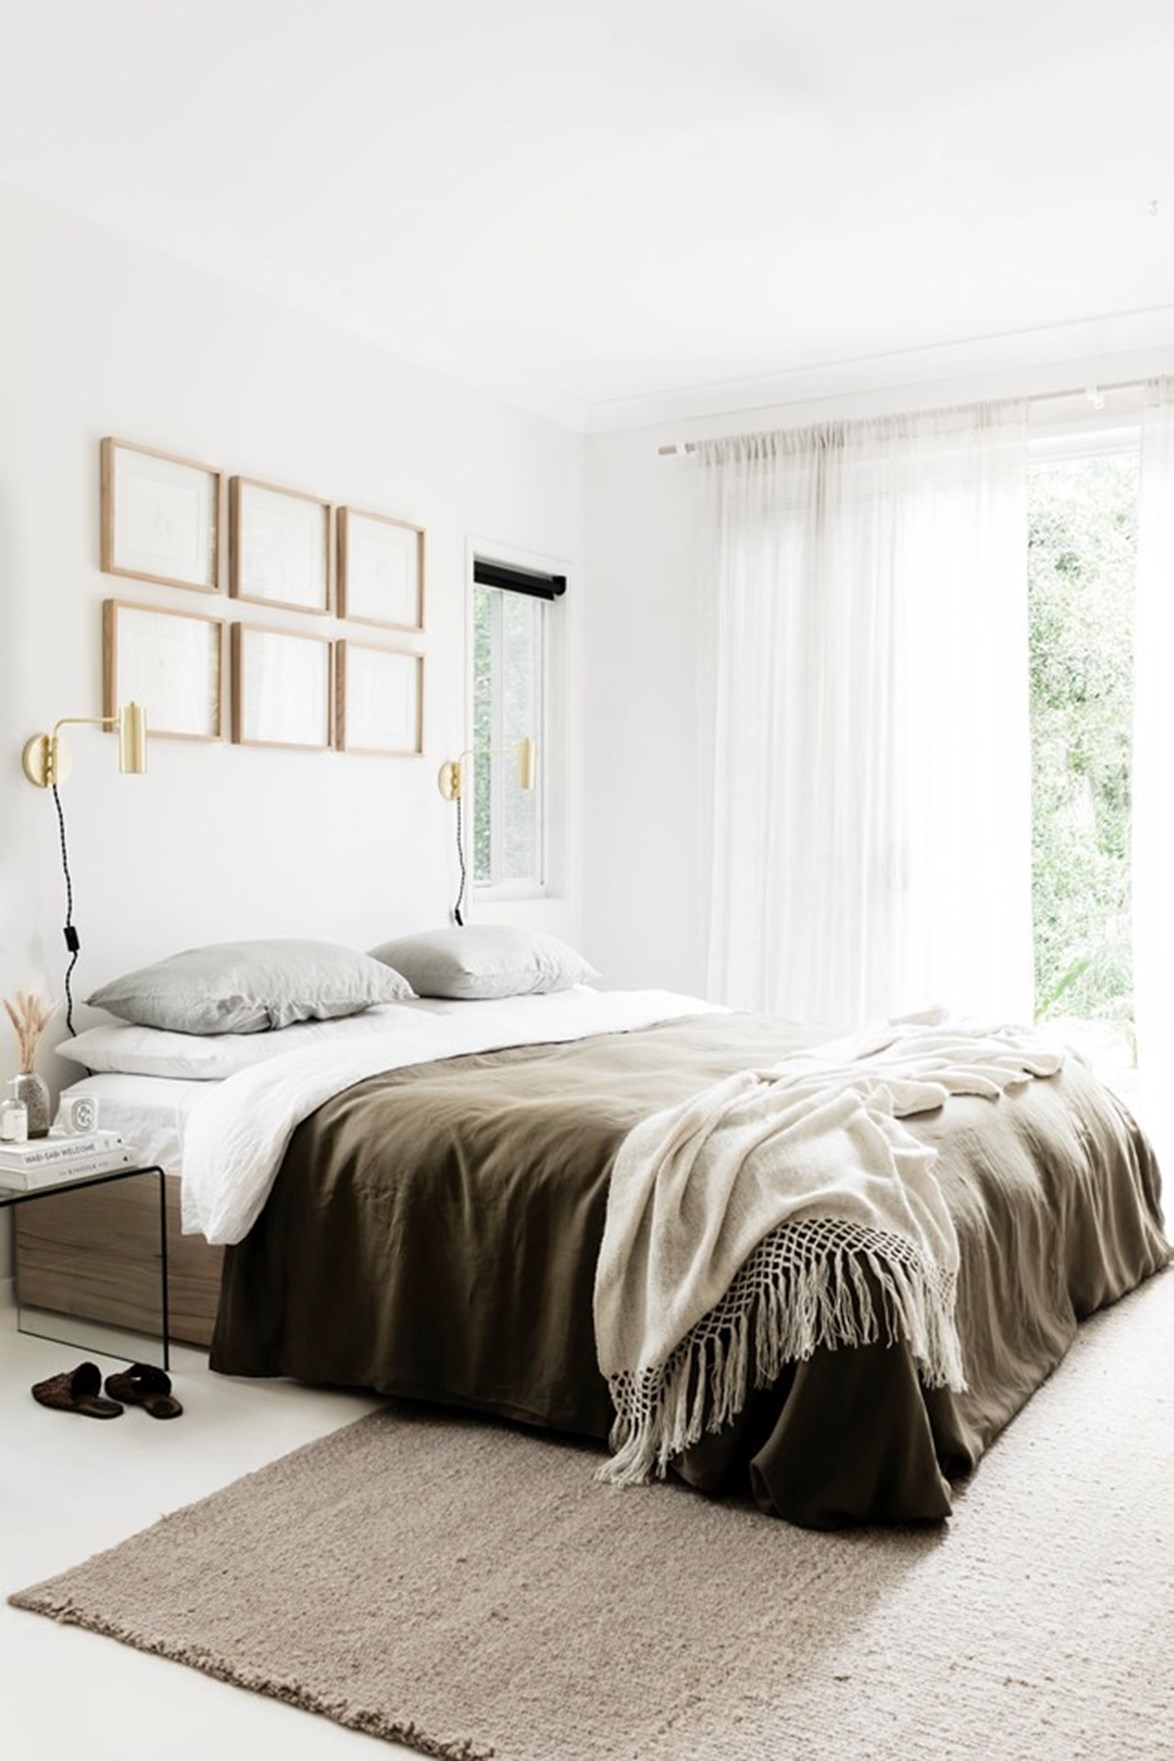 A clean, clutter-free bedroom will naturally make you feel calm.